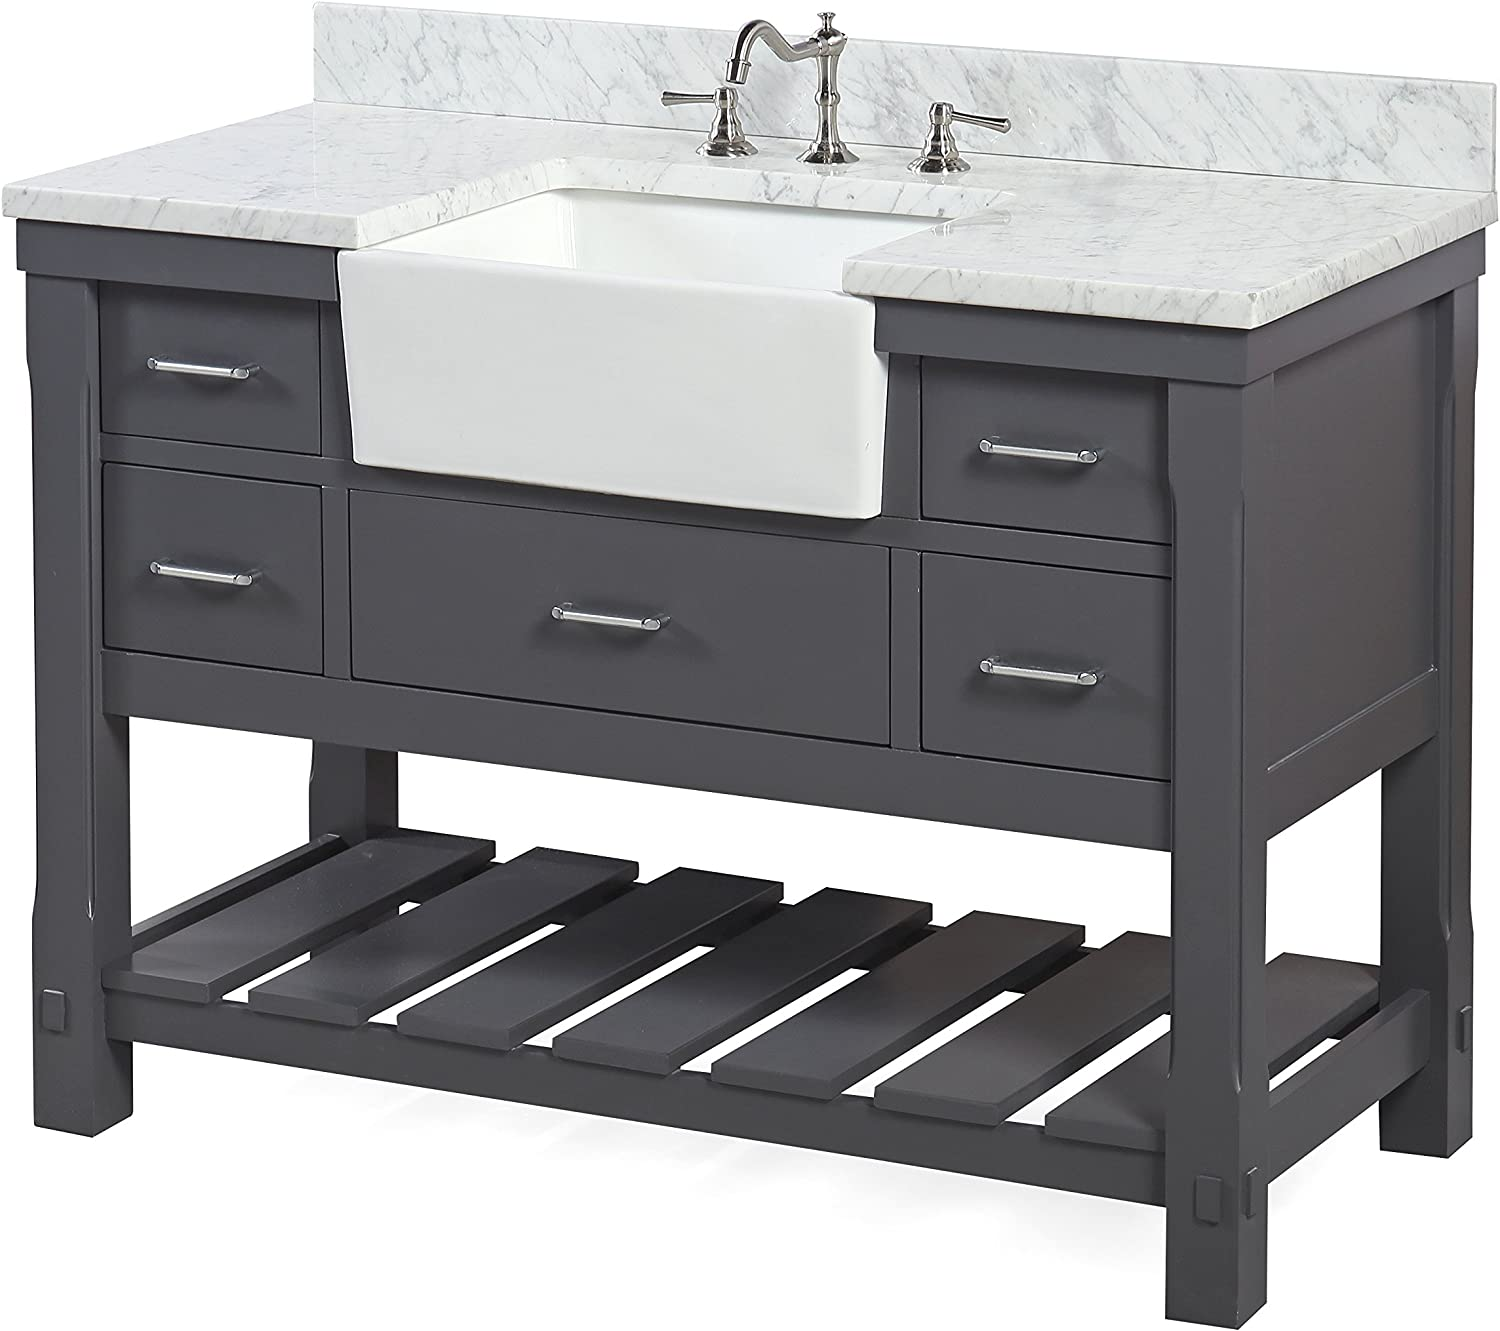 Charcoal Gray Cabinet With Soft Close Drawers And White Ceramic Farmhouse Apron Sink Charlotte 48 Inch Bathroom Vanity Includes A Carrara Marble Countertop Carrara Charcoal Gray Tools Home Improvement Bathroom Sink Vanities